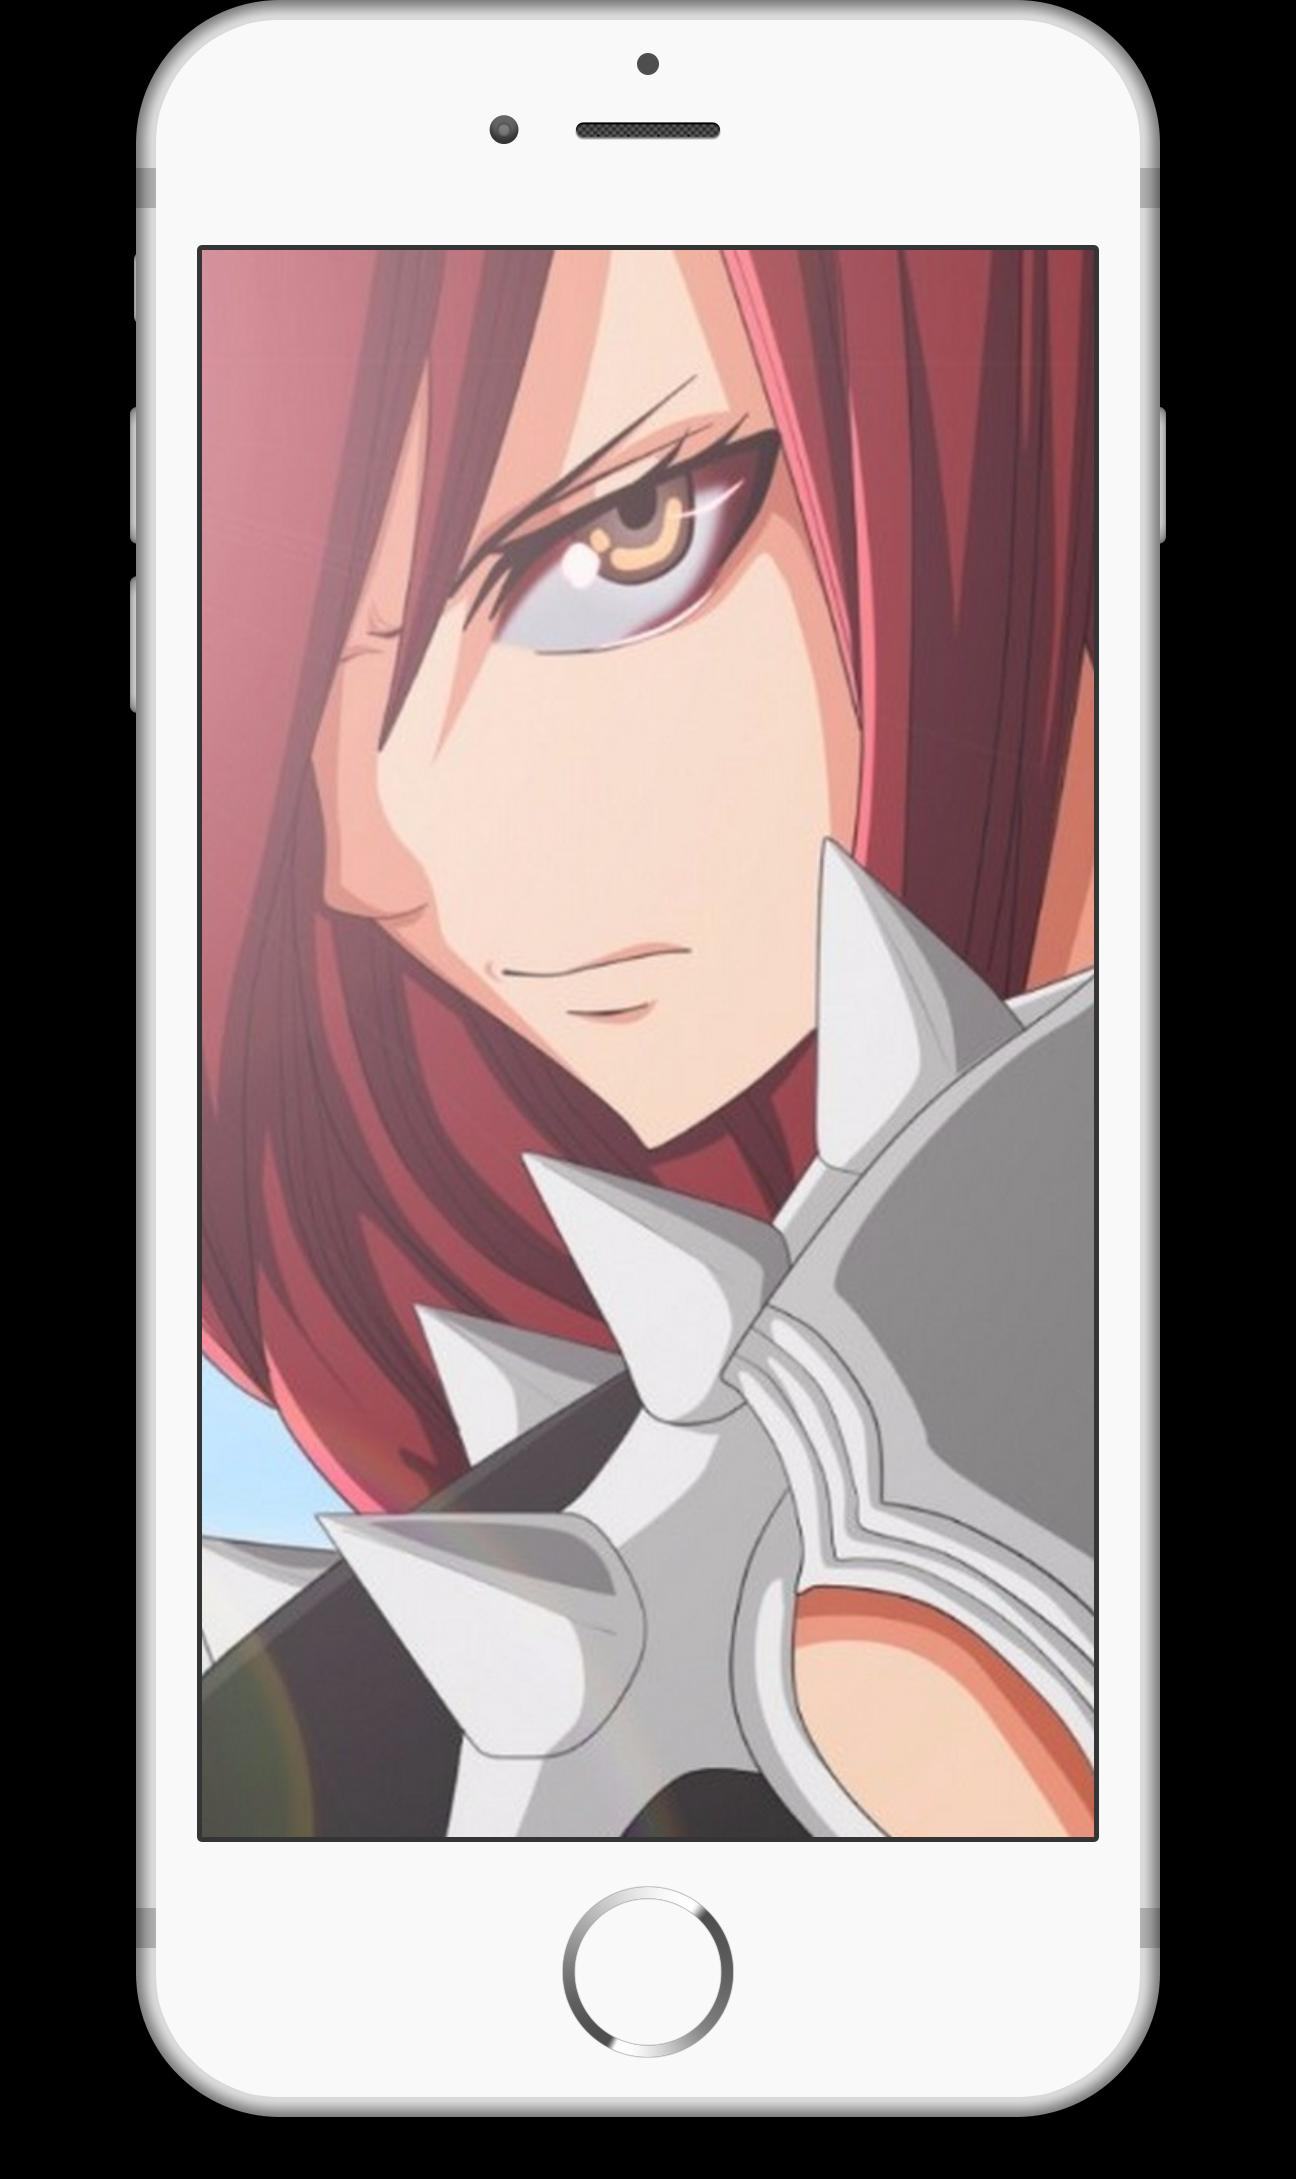 Erza Scarlet Fairy Tail Wallpaper Hd For Android Apk Download